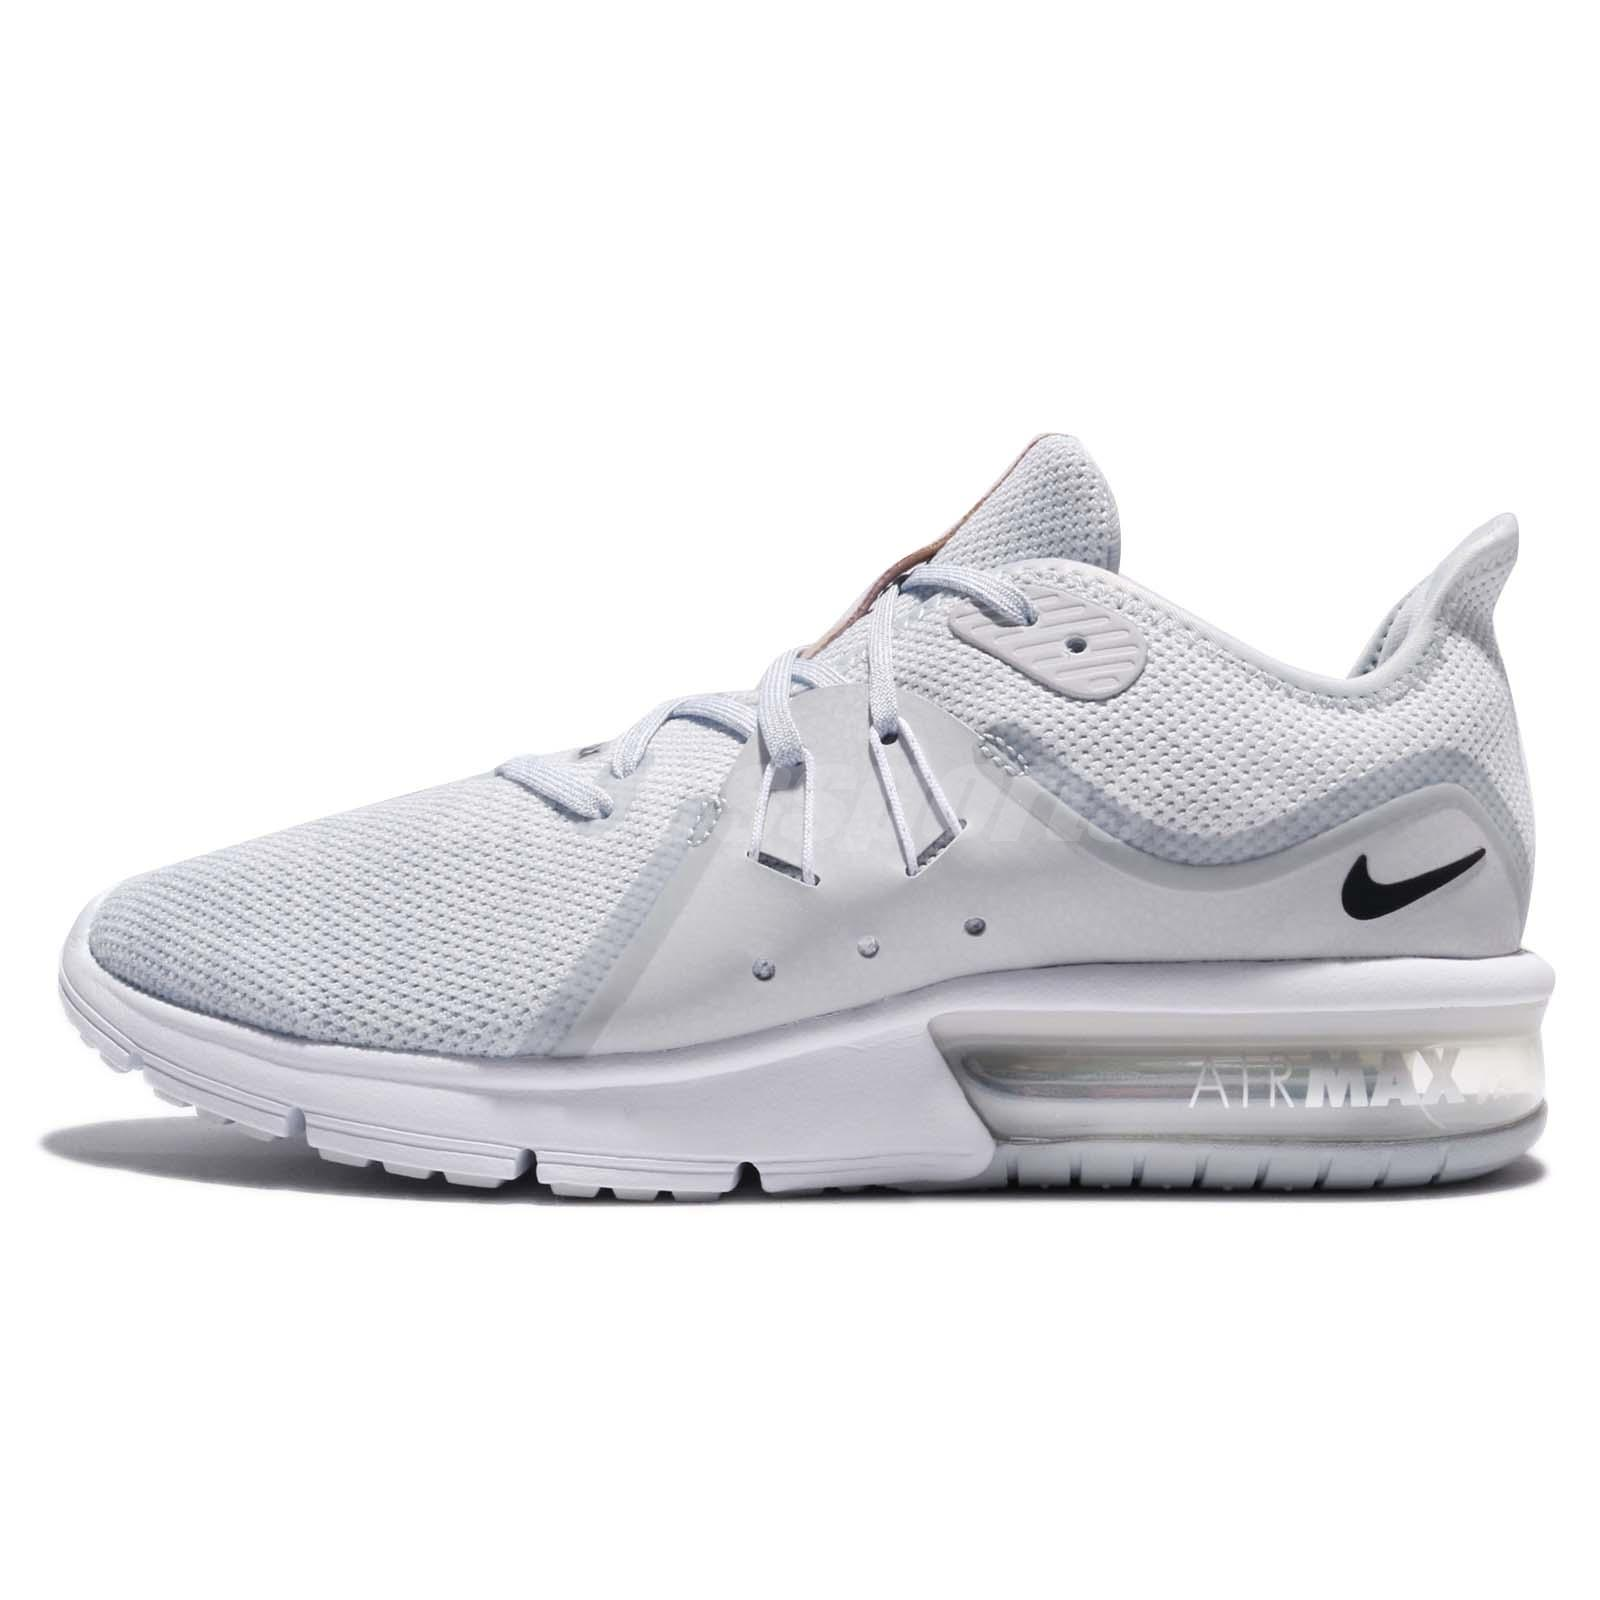 new arrival eded2 67d8f Nike Air Max Sequent 3 III Pure Platinum White Men Running Shoes 921694-008